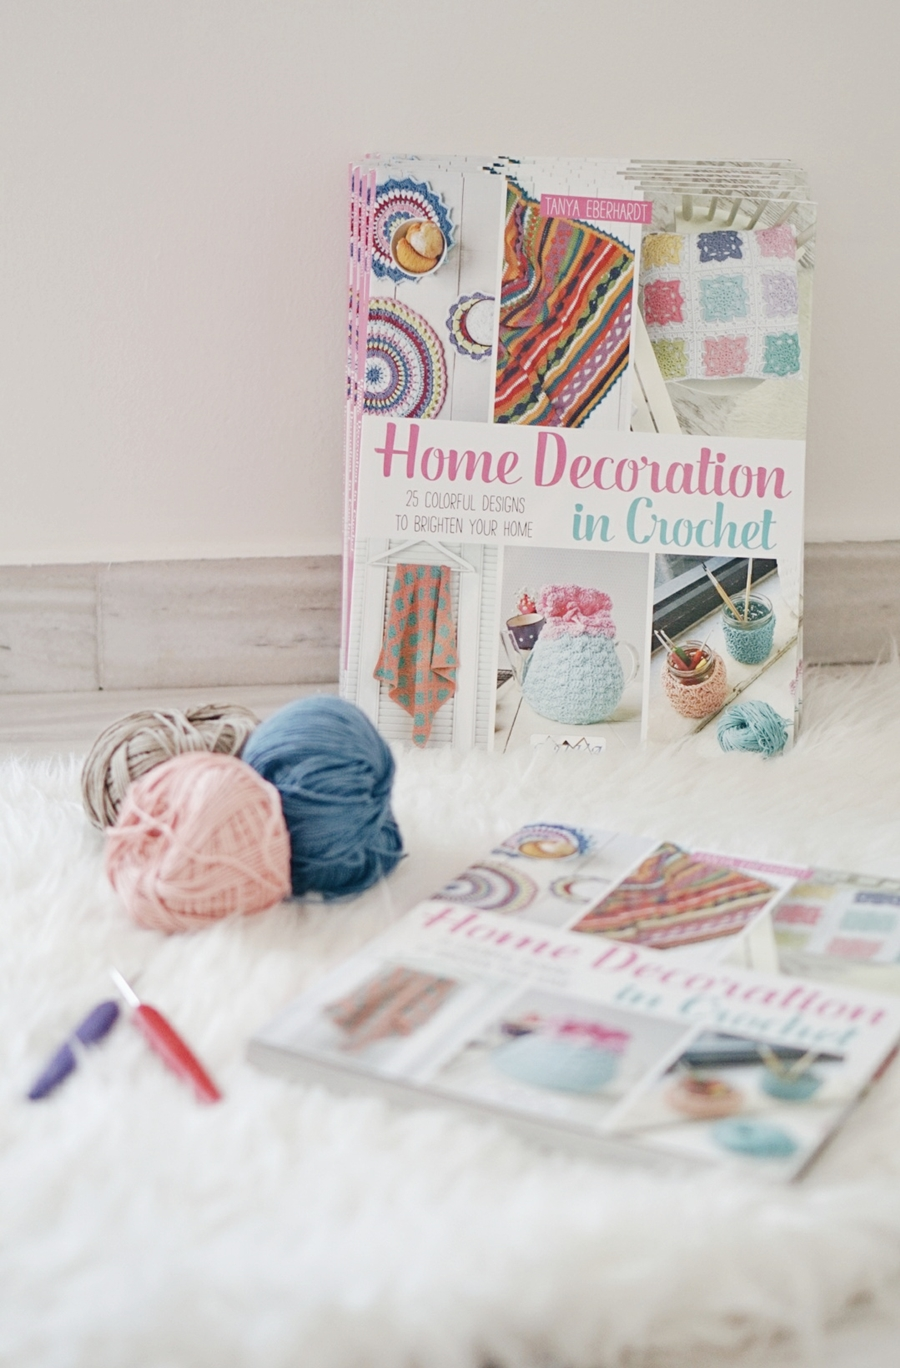 HOME DECORATION IN CROCHET BOOK TOUR & GIVEAWAY